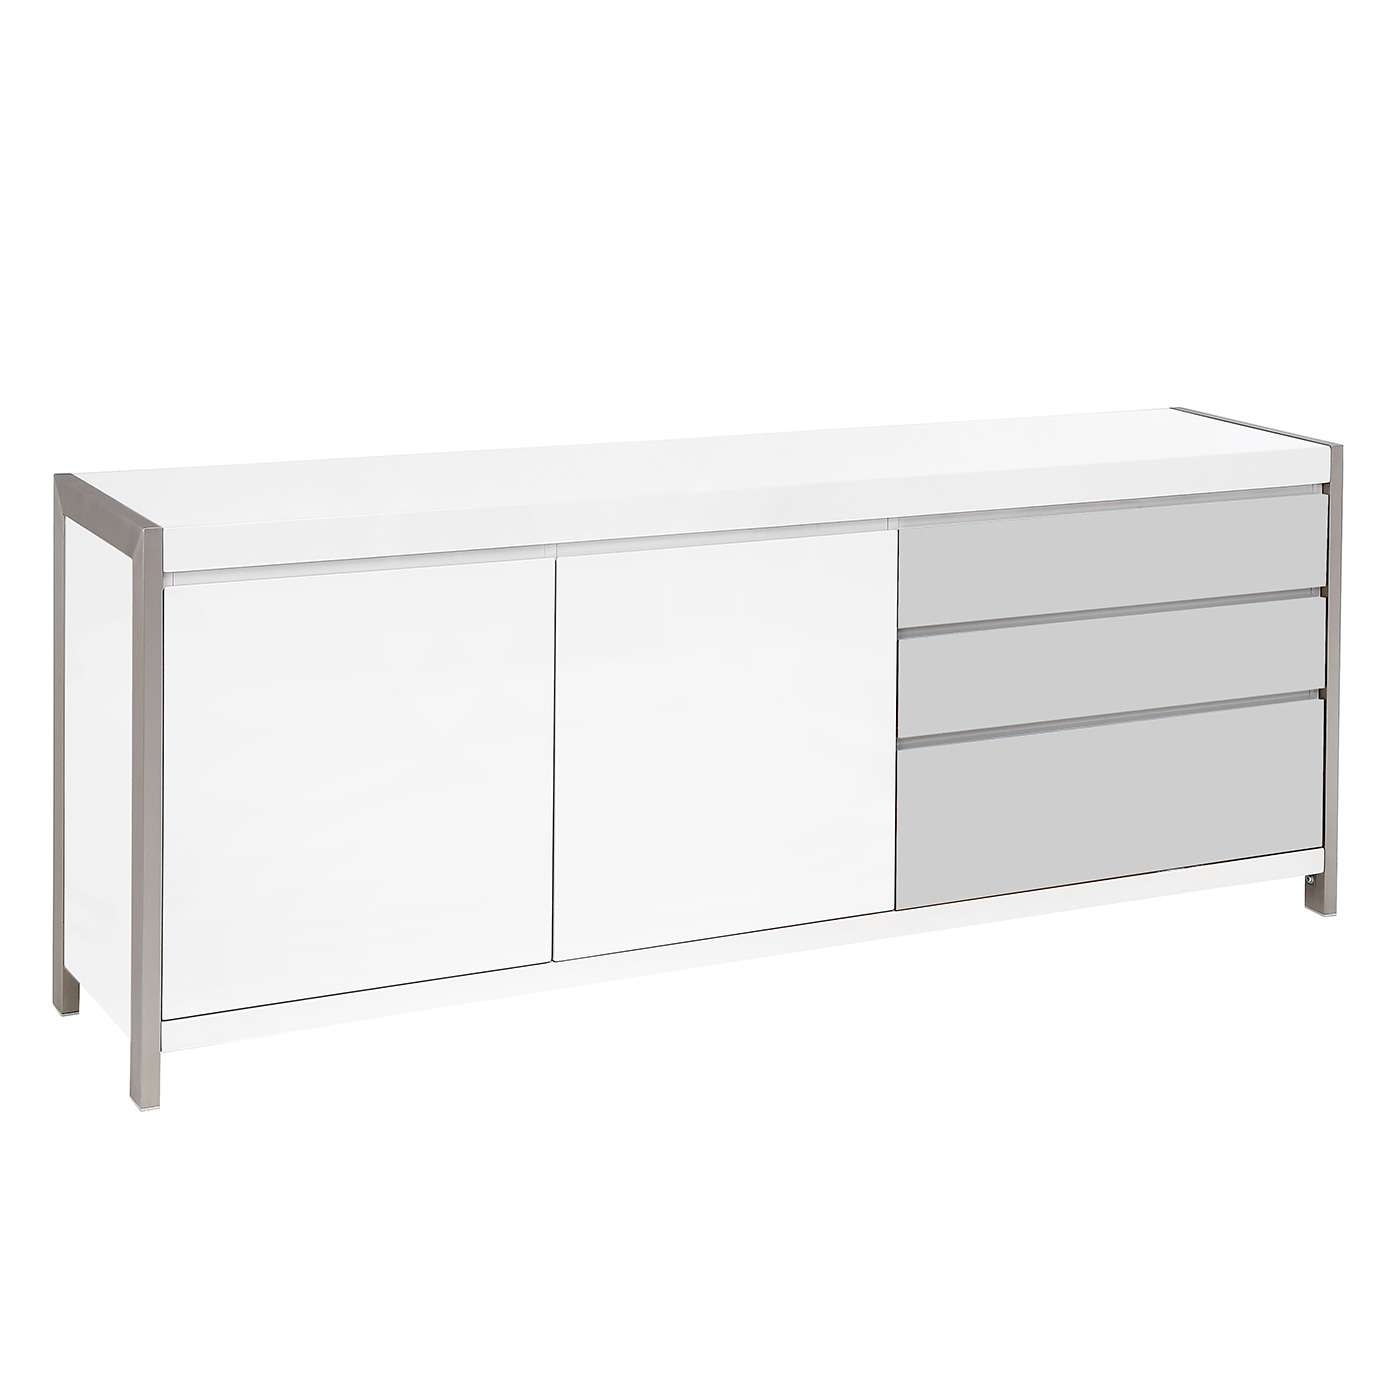 Dolcedo White High Gloss Sideboard | Redtree Furniture – Keadue Pertaining To High Gloss Grey Sideboards (View 20 of 20)